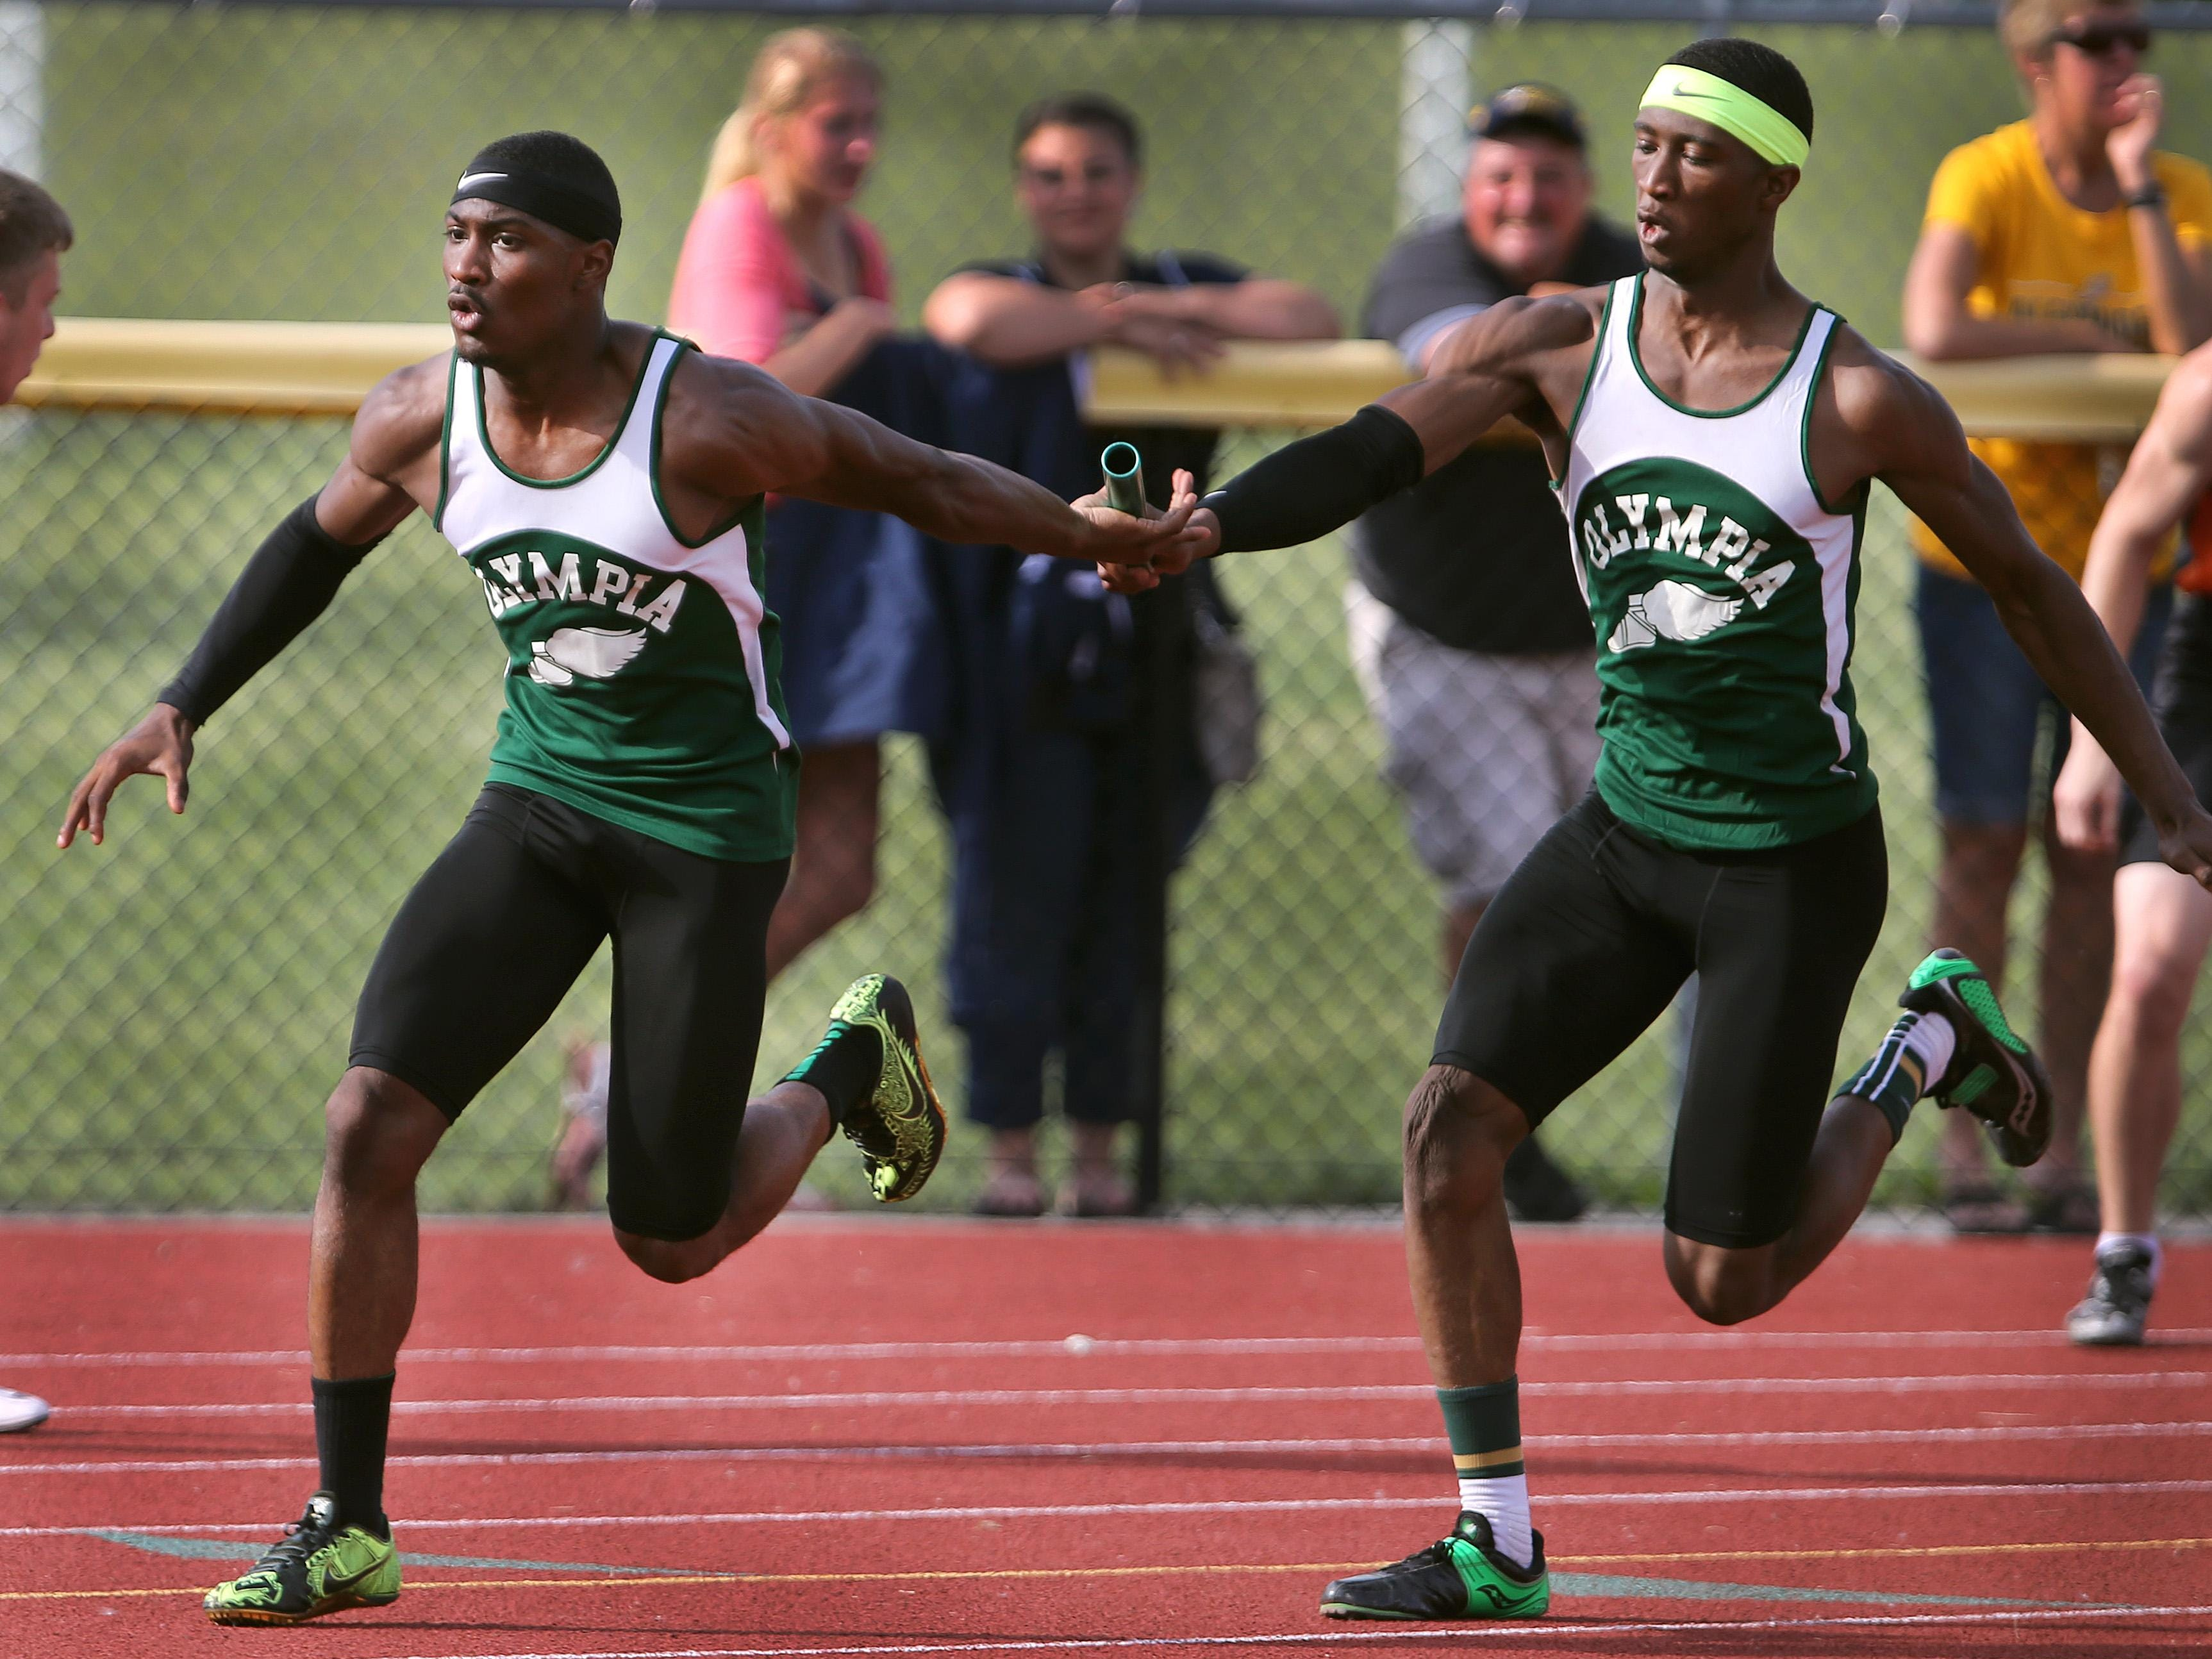 Olympia's Tre'Maine Moore, right, hands off the baton to anchor runner Carnell Noble enroute to winning the 4x100 relay at the state qualifier Friday at Caledonia-Mumford High School.